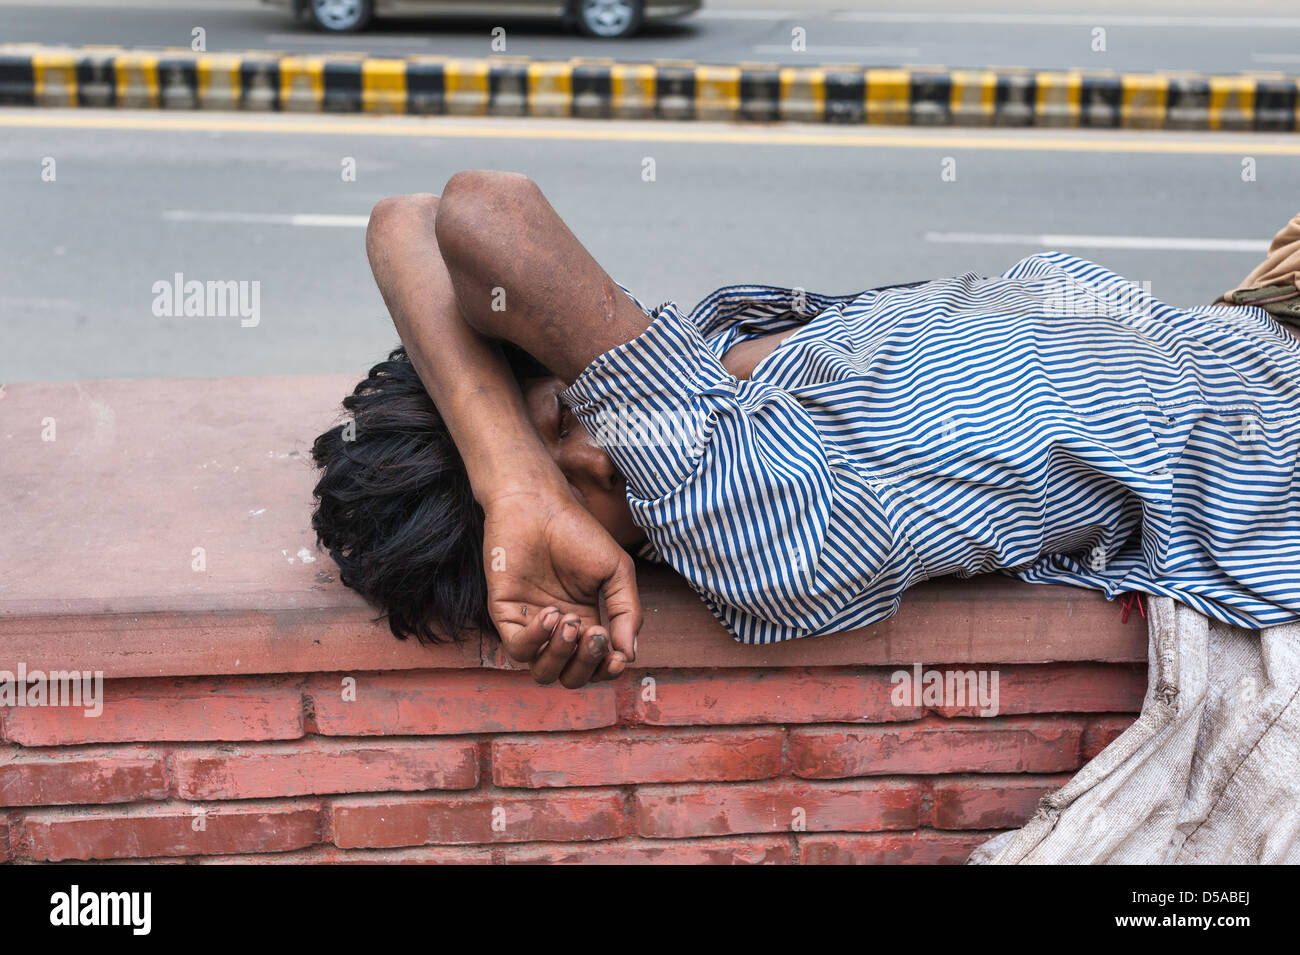 Homeless man asleep on side of busy road in Karol Bagh, a salubrious part of New Delhi, India. - Stock Image